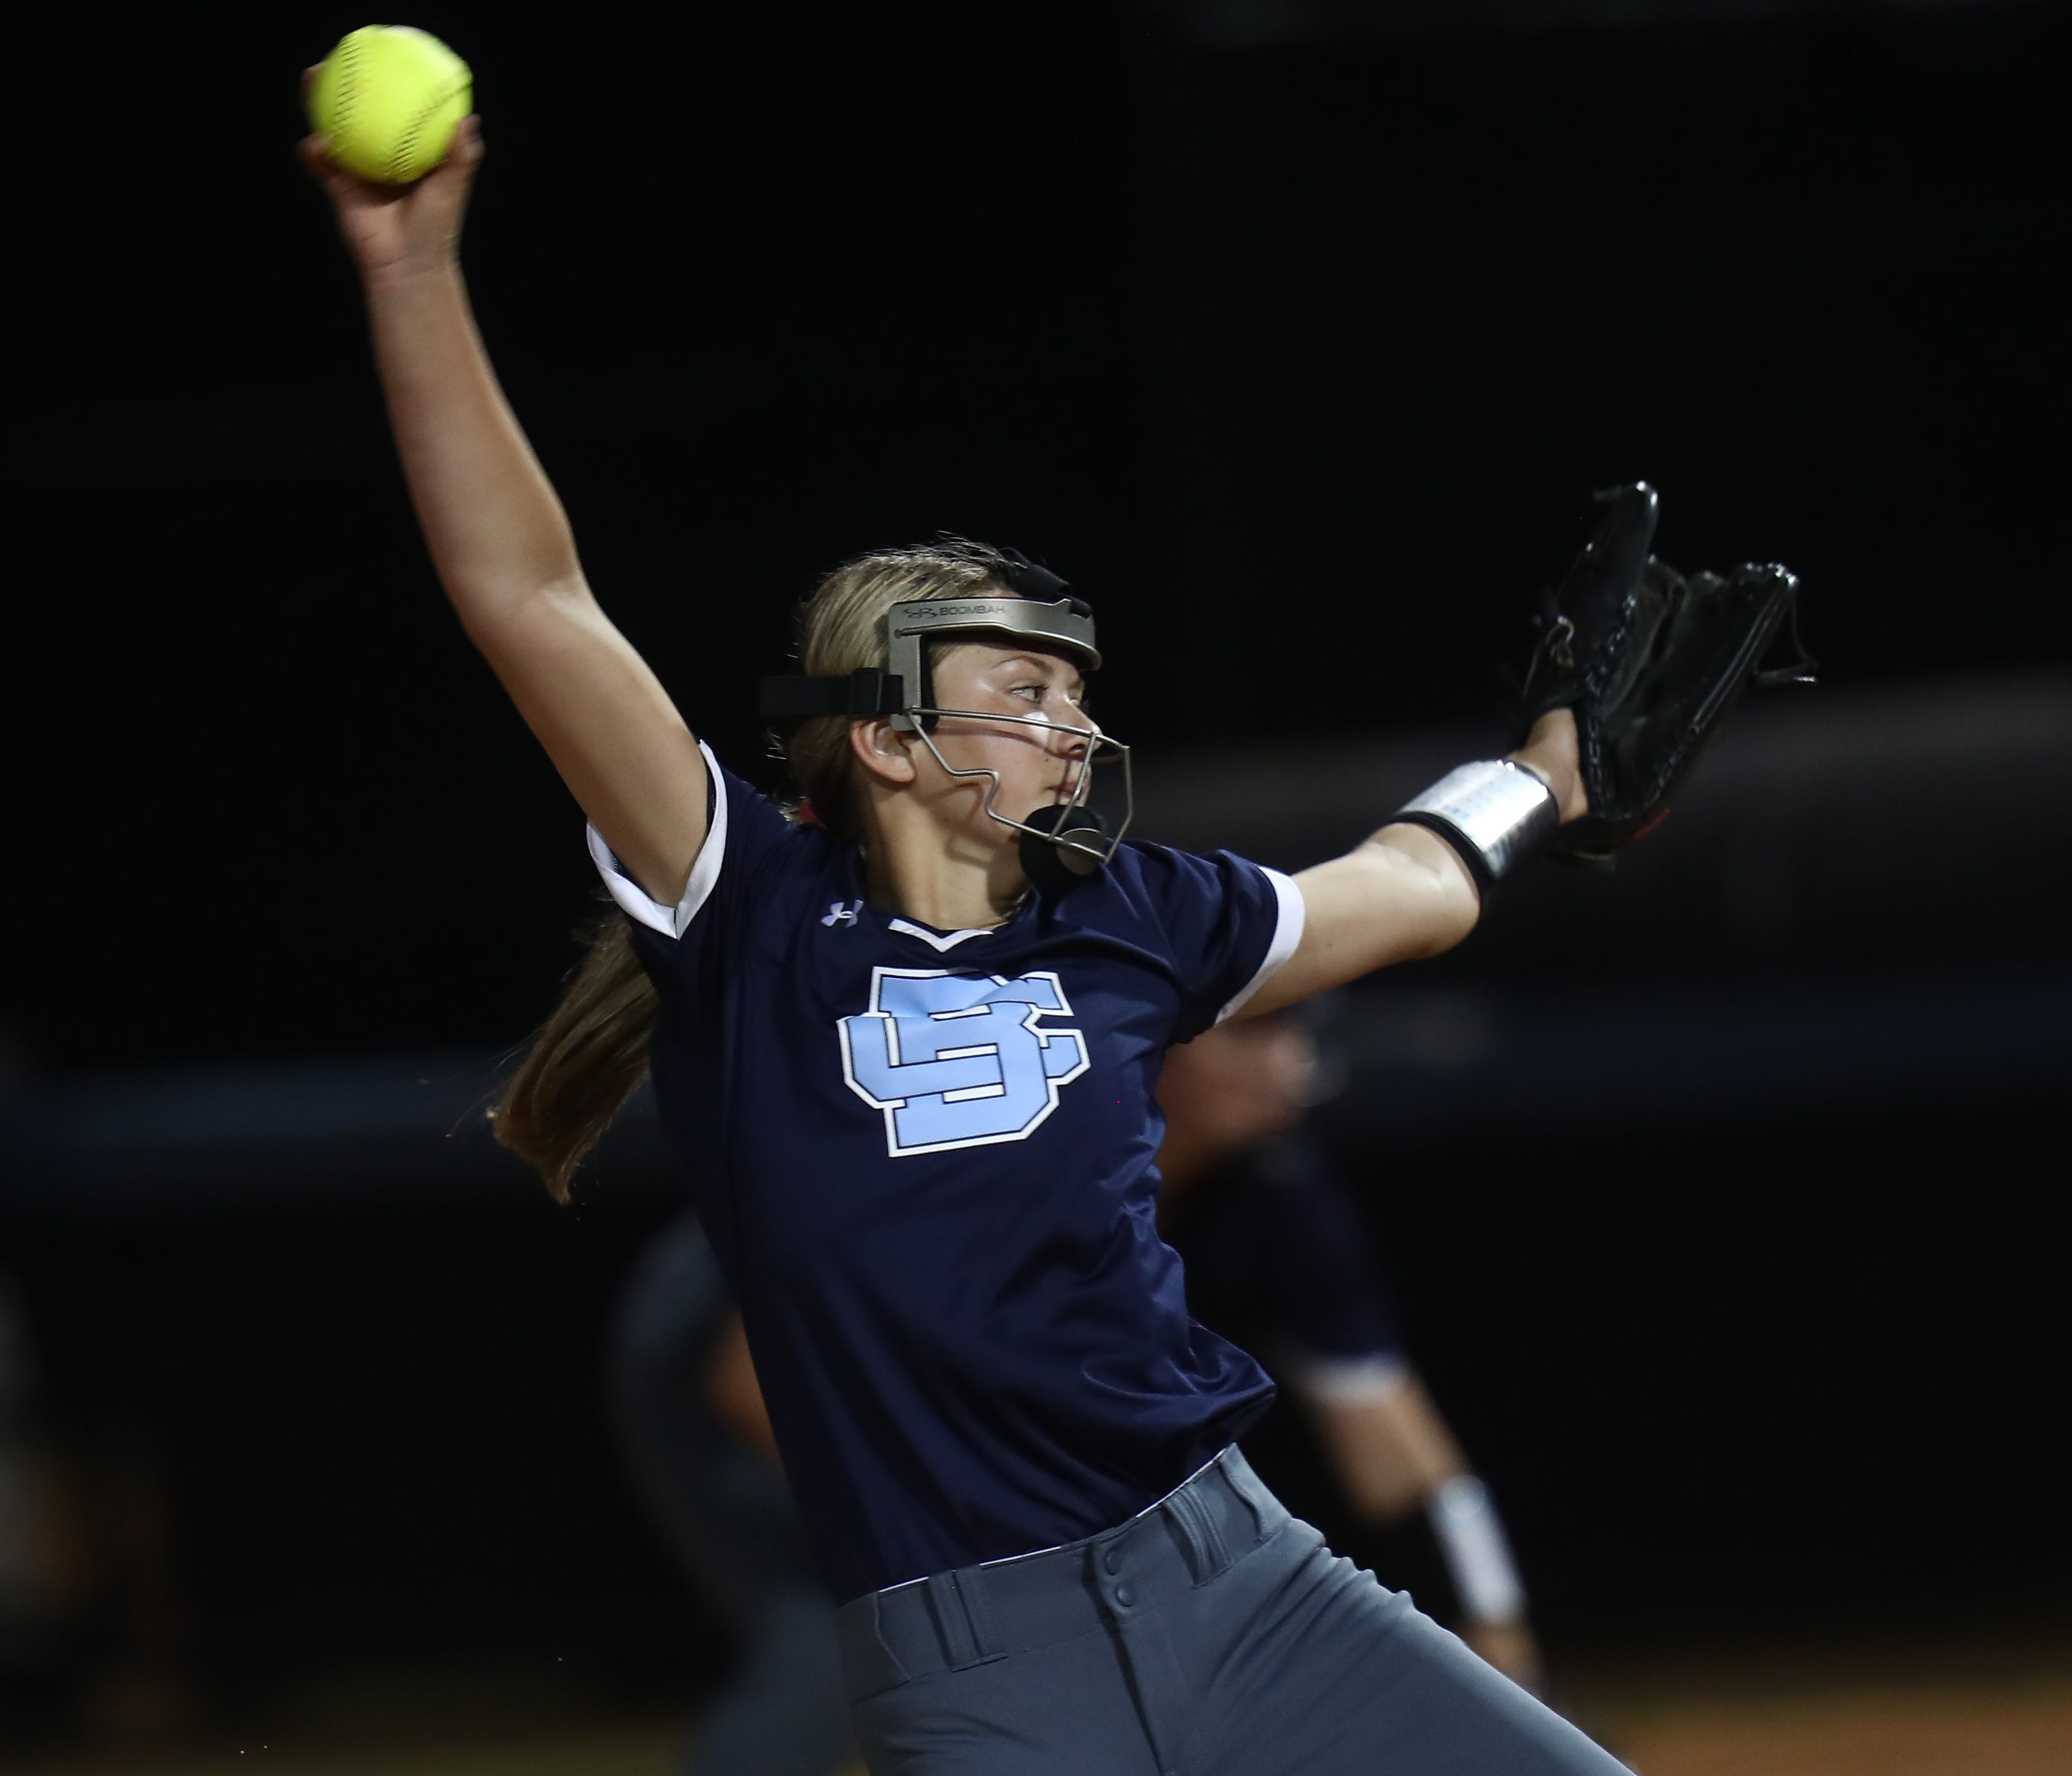 WATCH: Boone County softball's postseason run ends in 1st round of state tournament